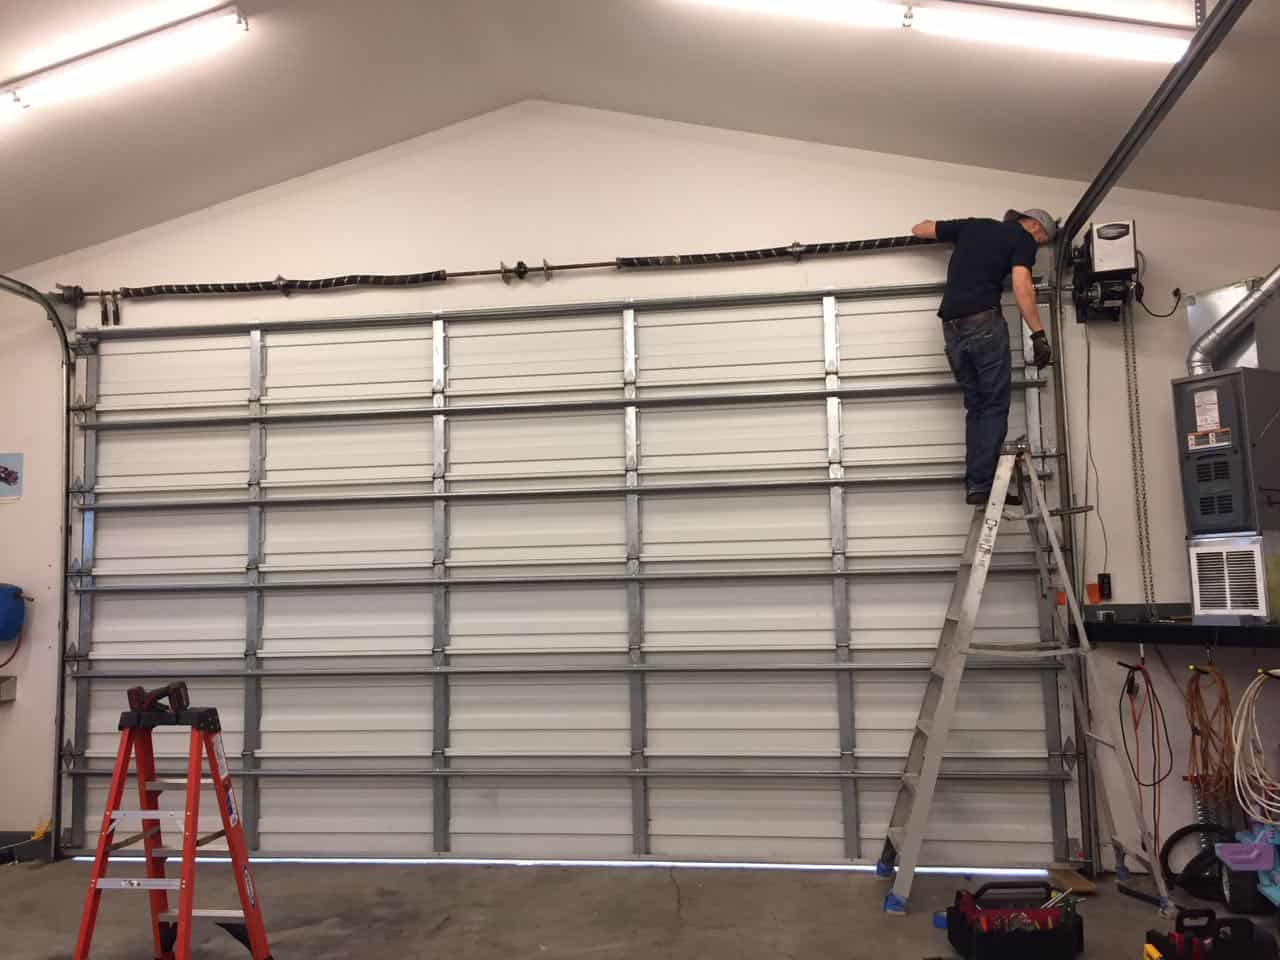 Garage Door Parts Seattle Commercial Garage Door Repair In Sumner Wa By Elite Tech Services Llc